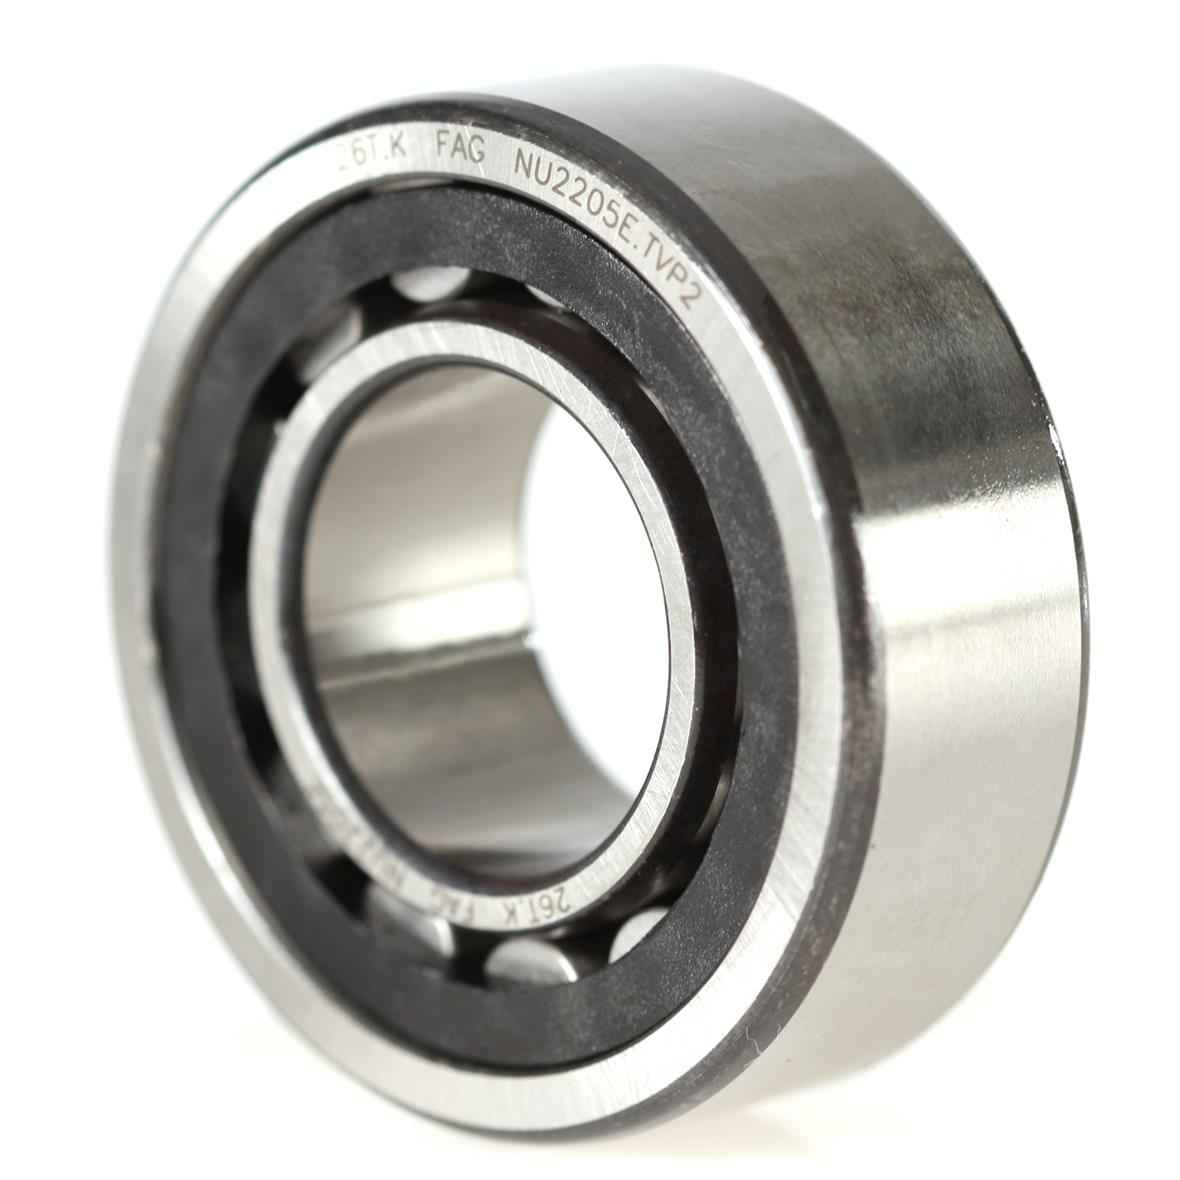 Product Image for 'Bearing Crankshaft flywheel side FAG 25x52x18 mmTitle'